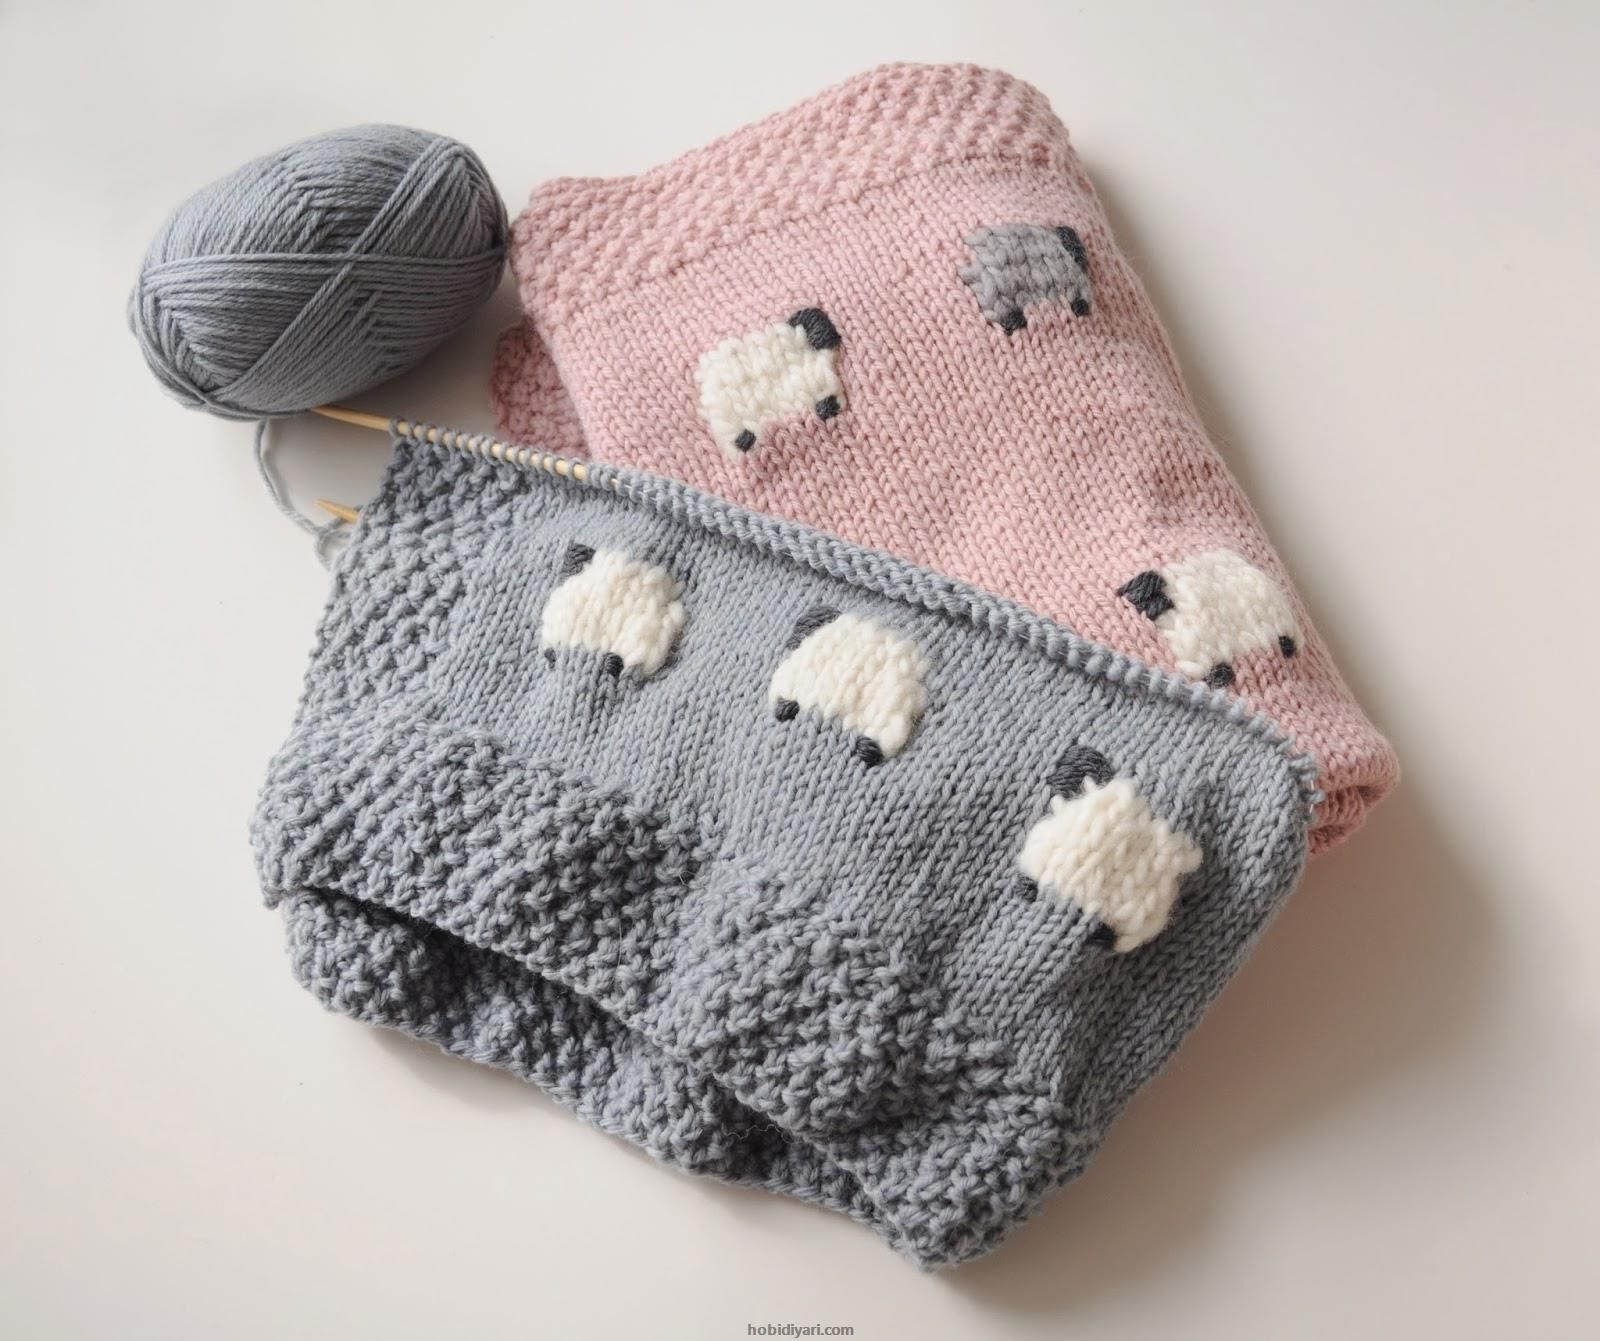 2017 yl in kark bebek rg modelleri hobi diyar child knitting patterns this sheep sample for infants is so candy images by fieldguided sample in treasured knit blankies for child by jean adel baby bankloansurffo Gallery